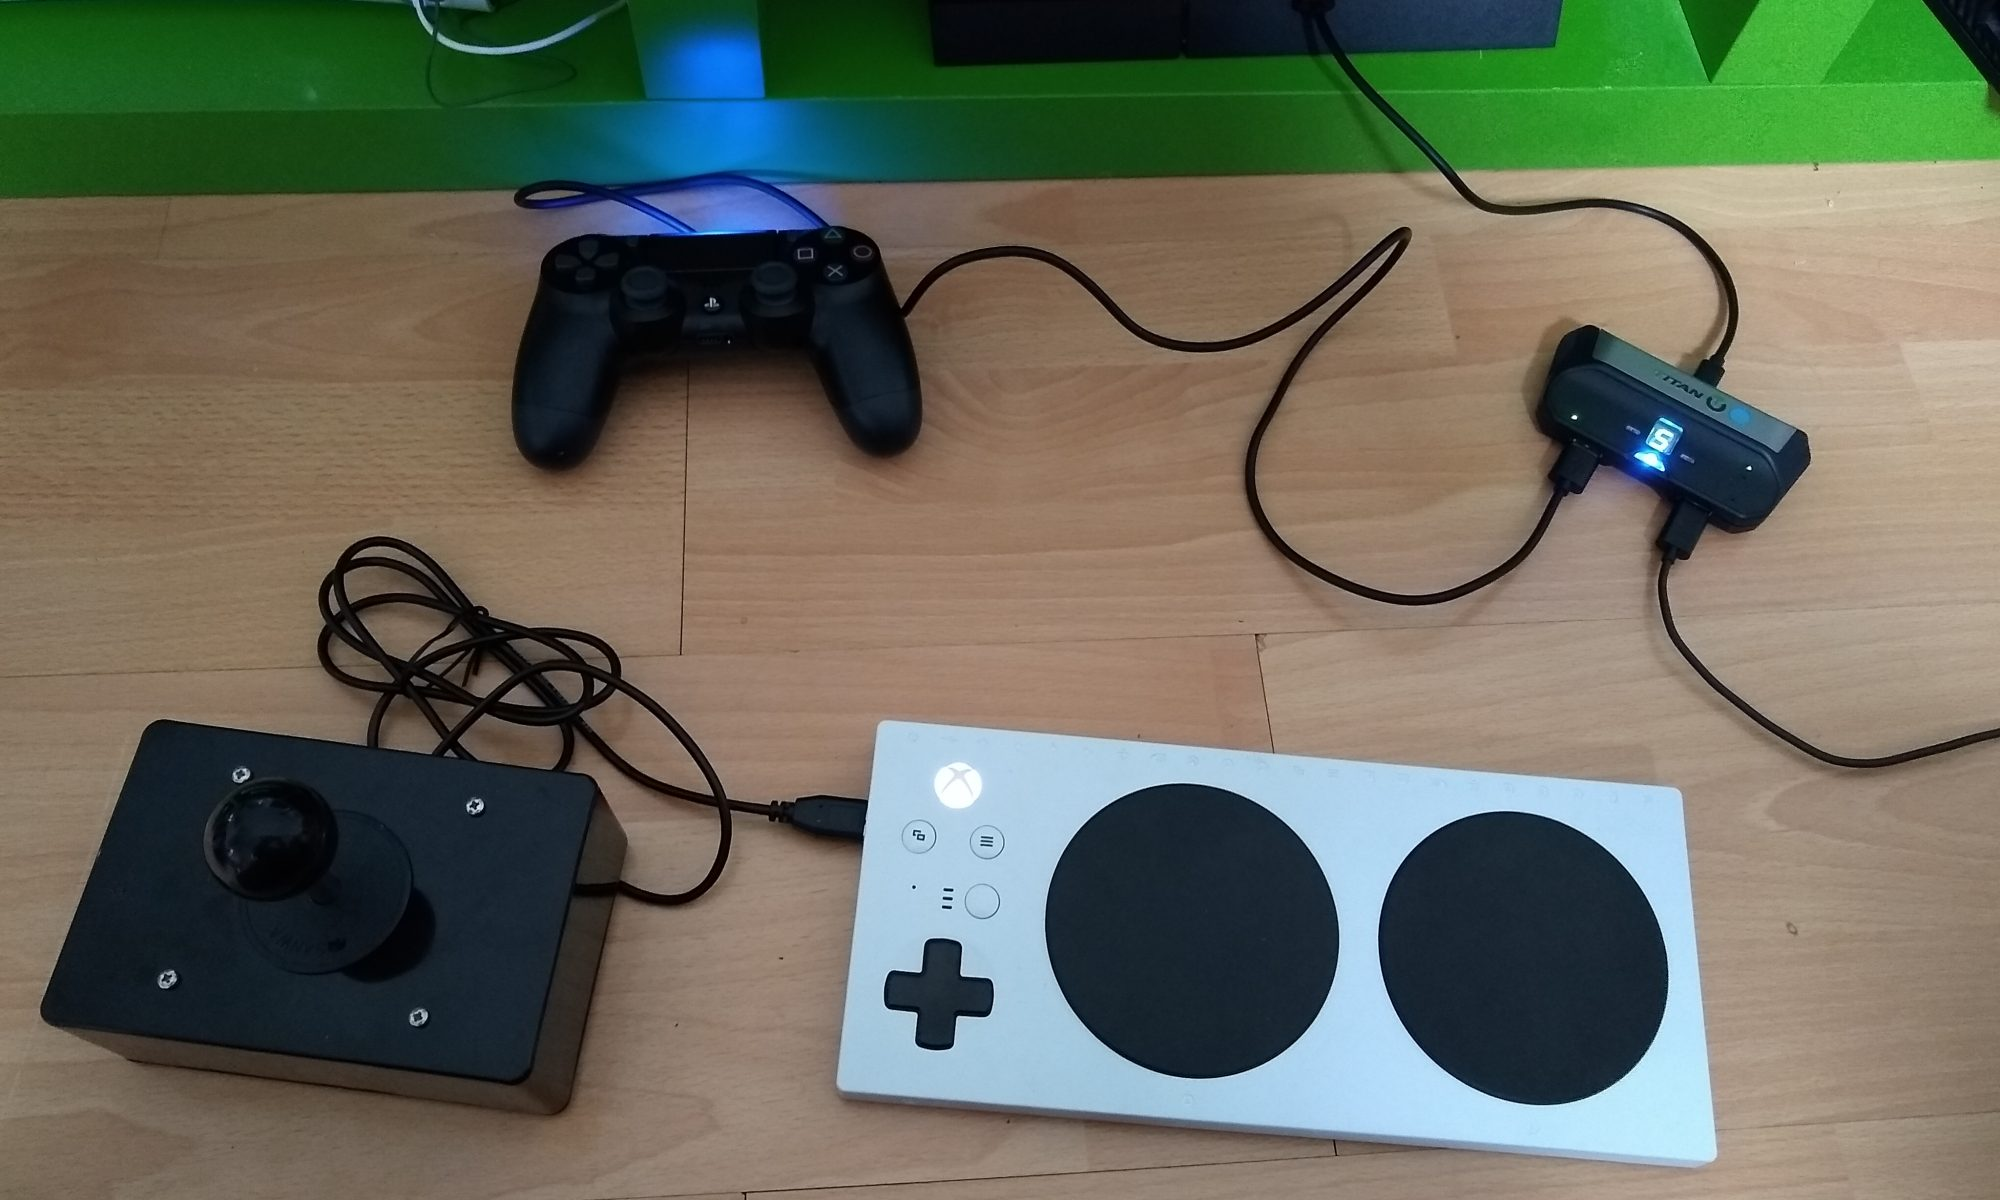 Xbox Adaptive Controller connected wirelessly to a Titan Two into a Playstation 4. With OneSwitch Ultrastik controller.